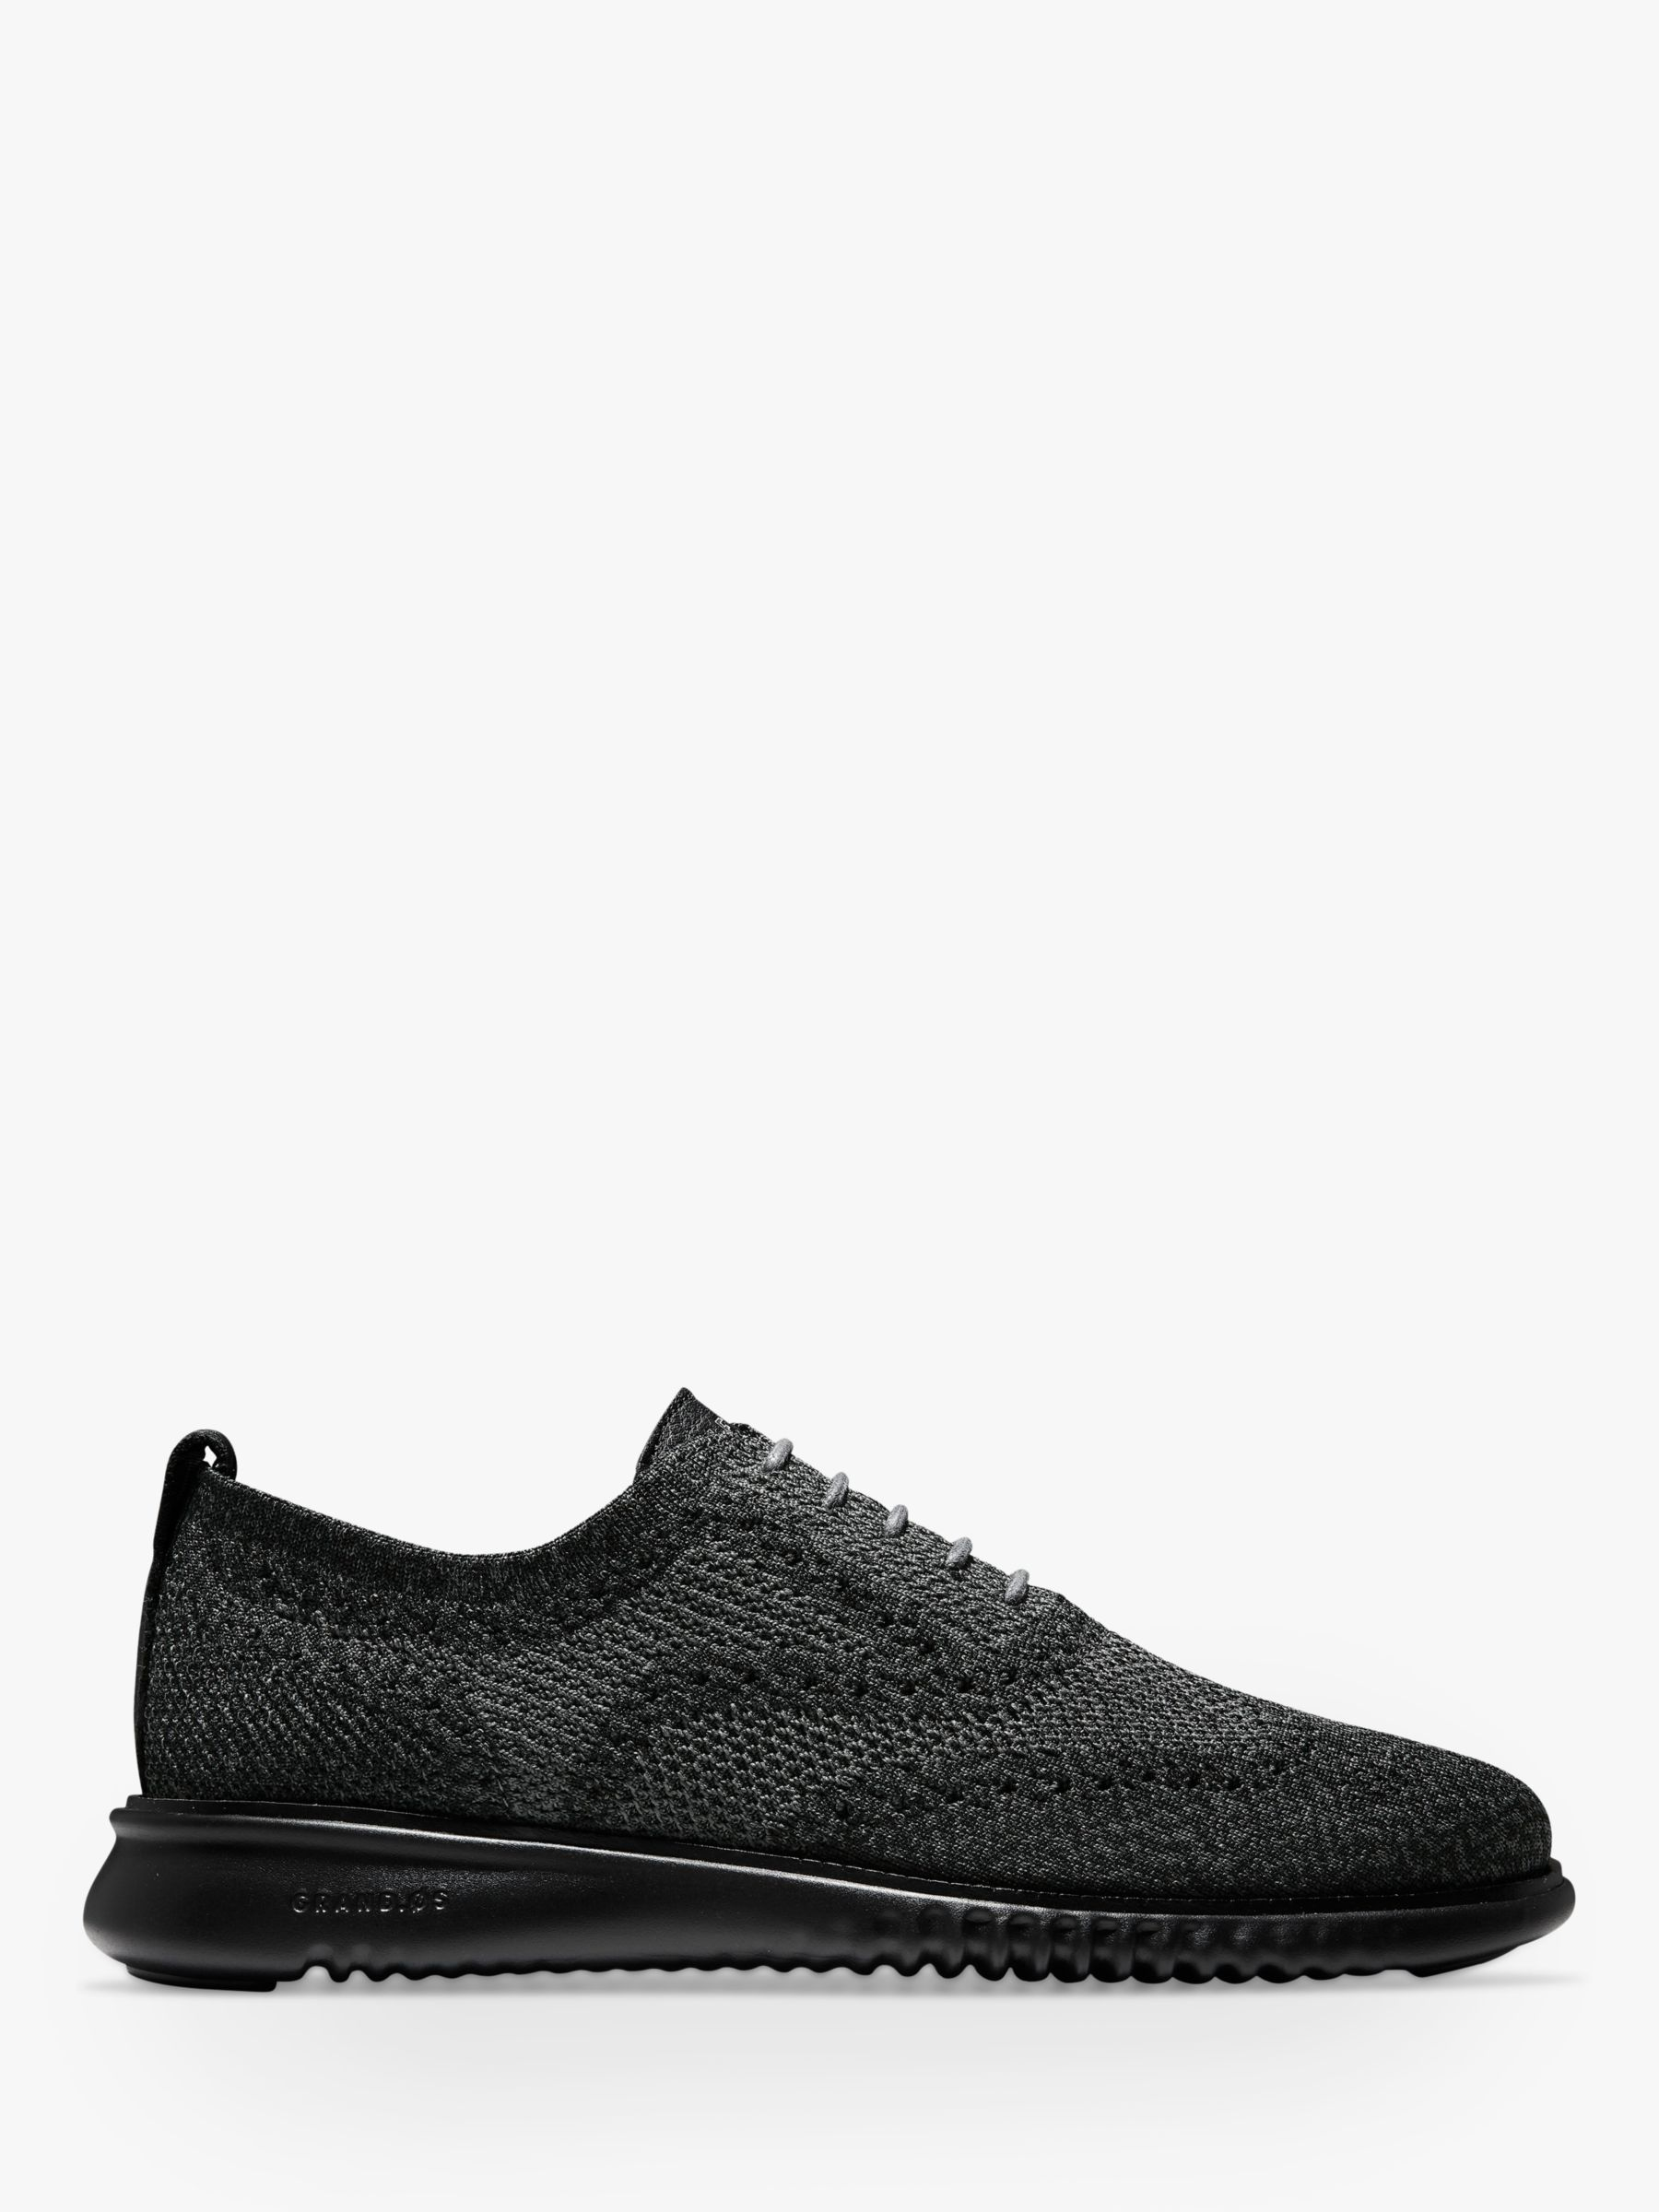 Cole Haan Cole Haan Zerogrand Stitchlite Knitted Oxford Shoes, Black/Magnet